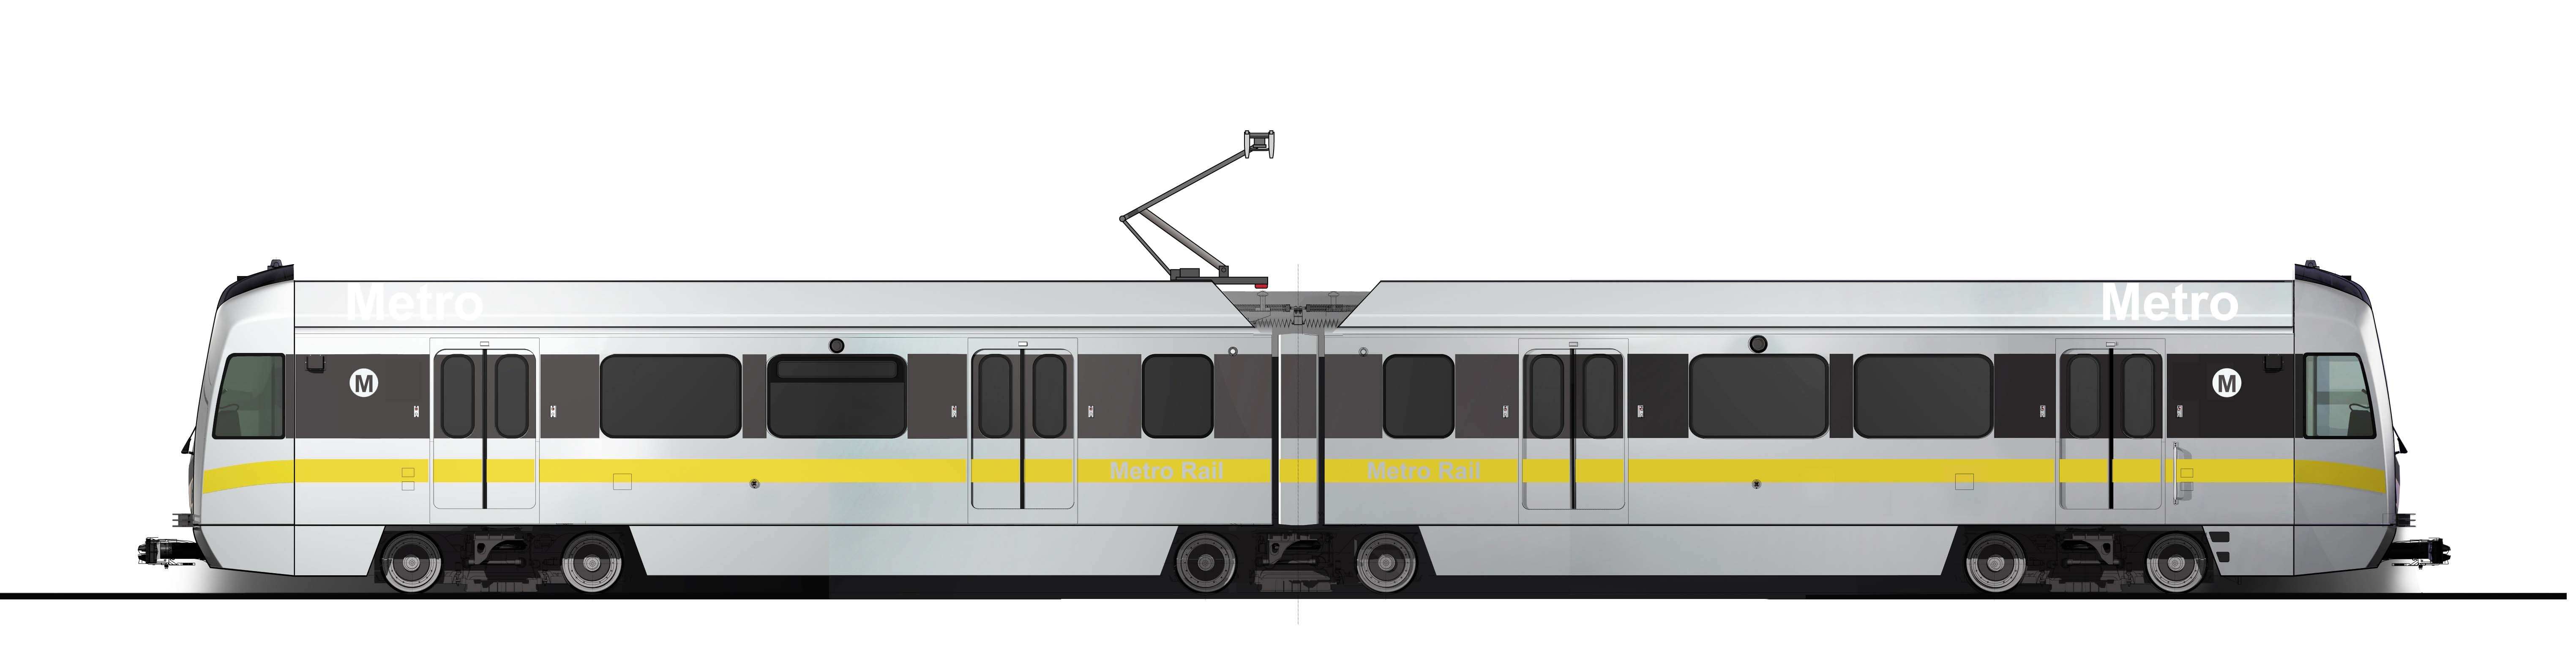 Metro Board approves contract to purchase new light rail ...